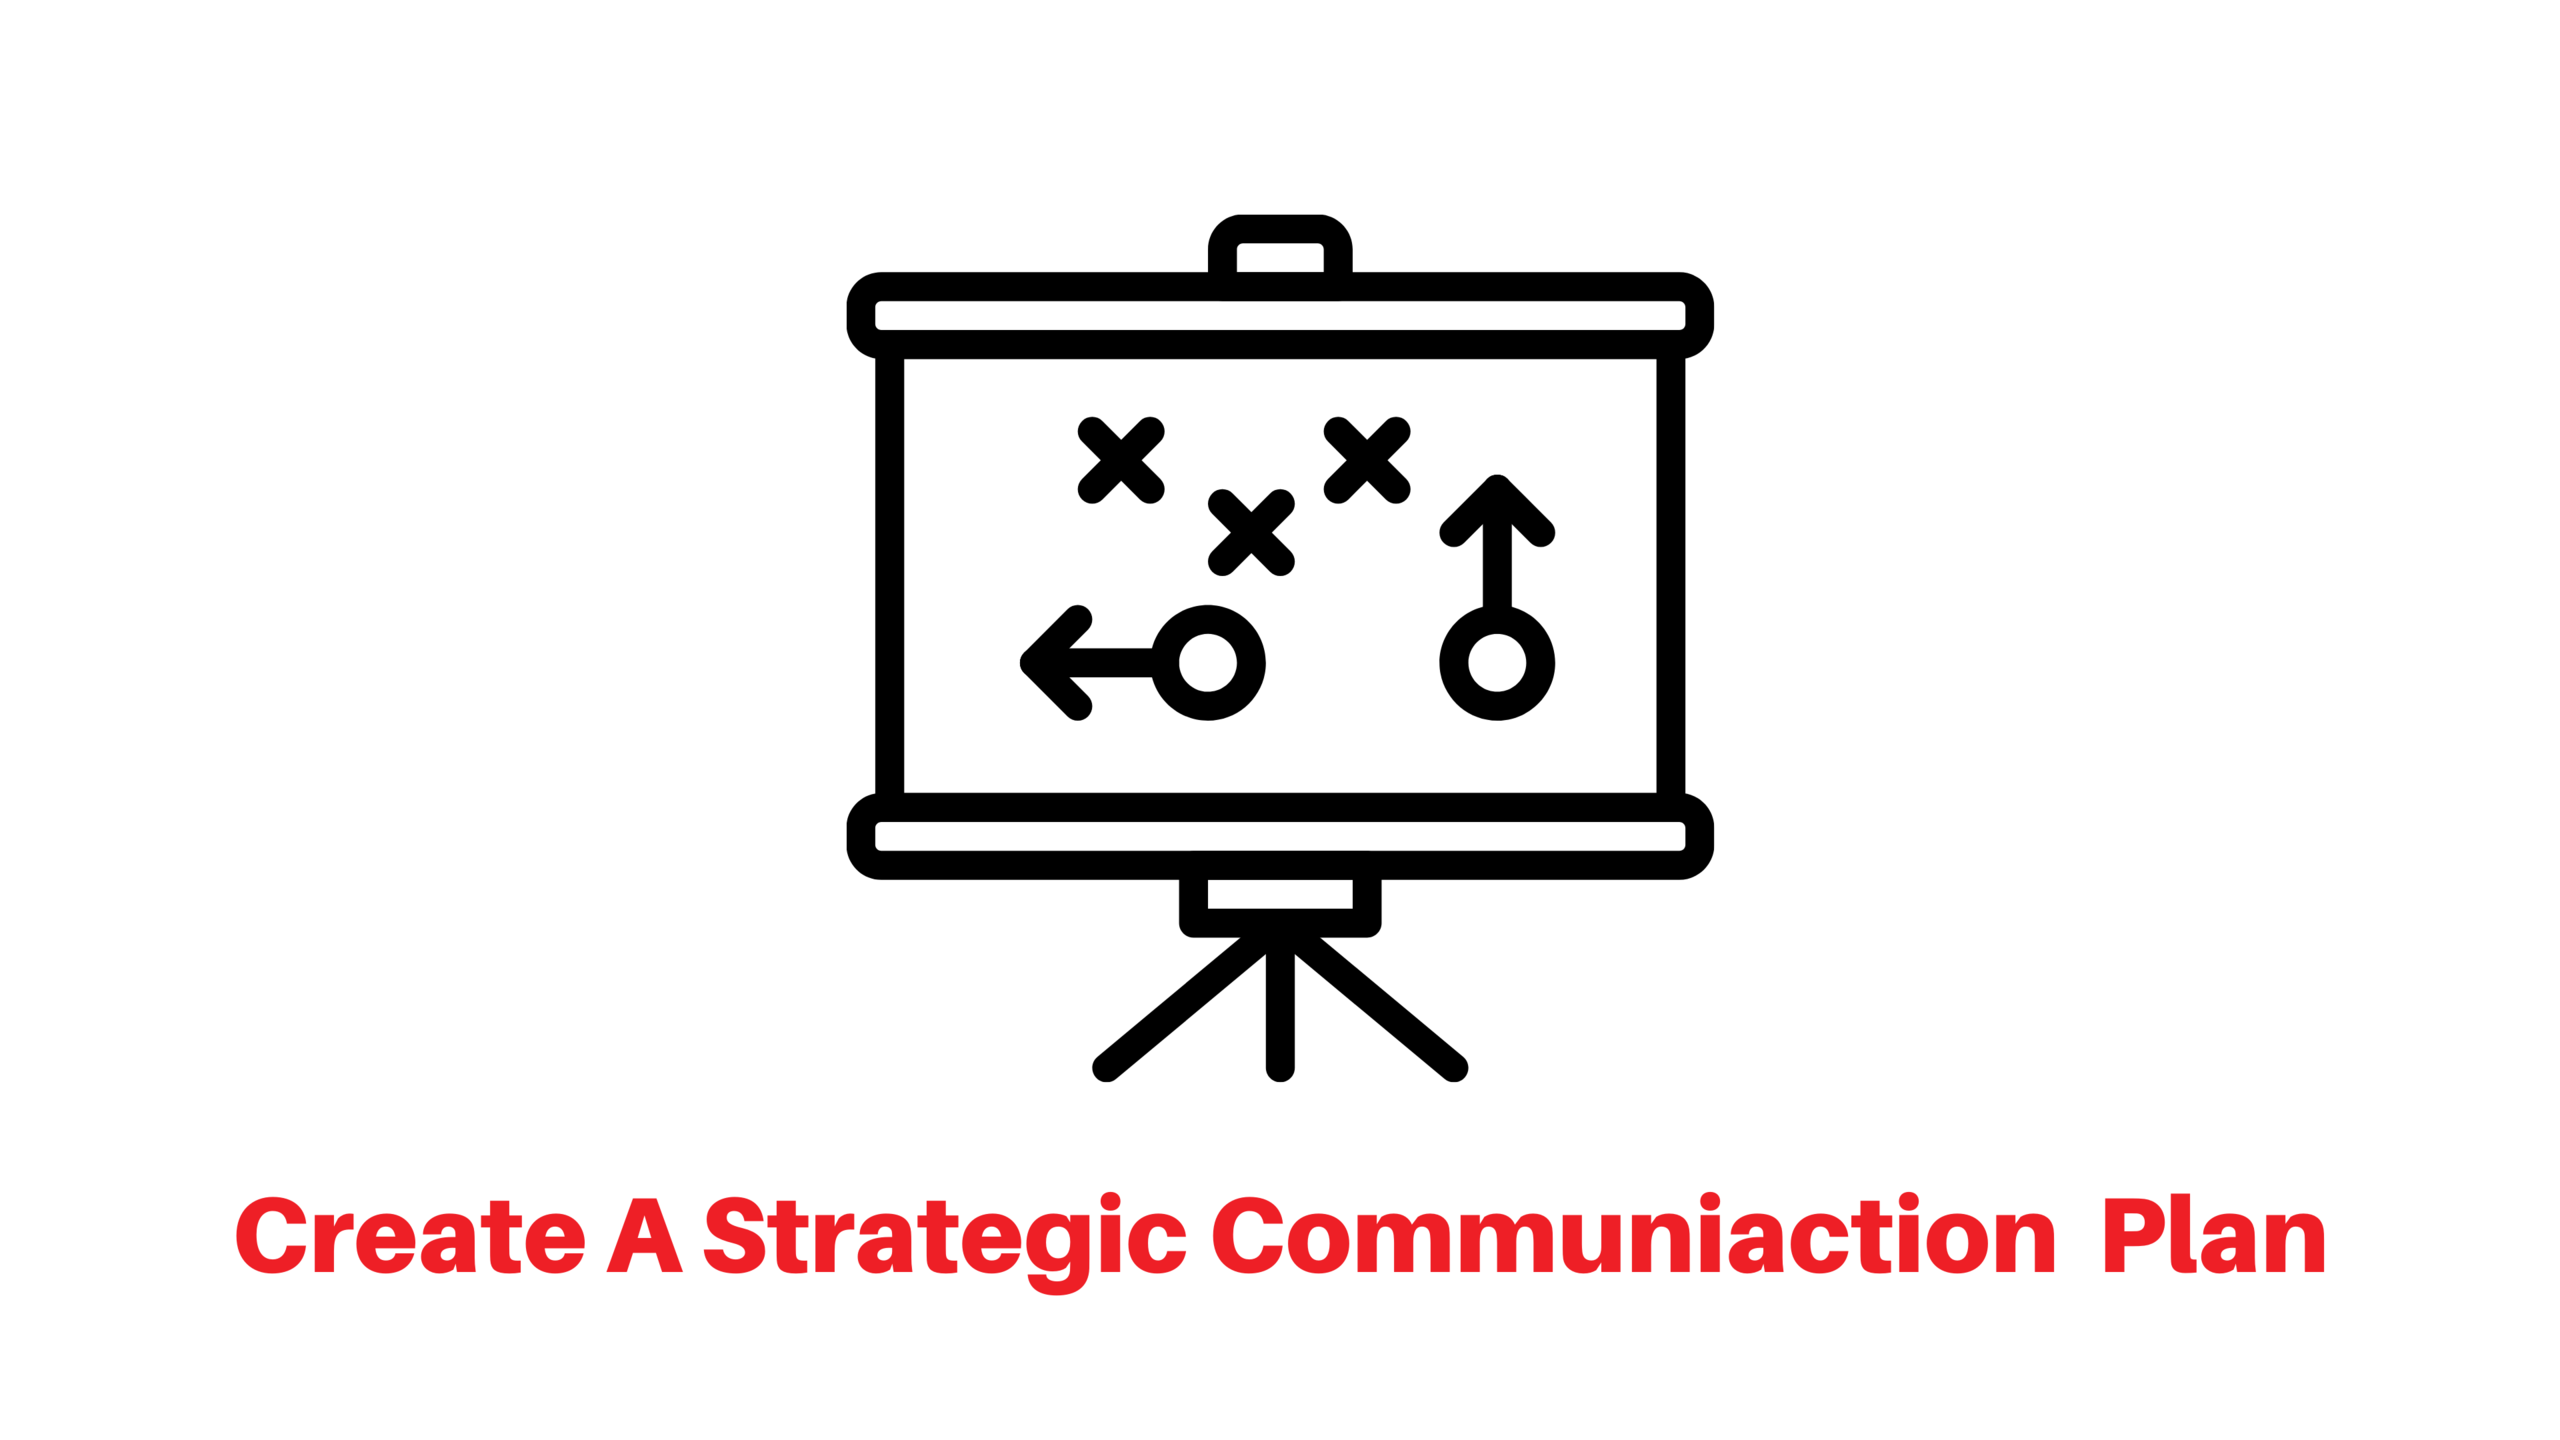 Create a strategic communication plan